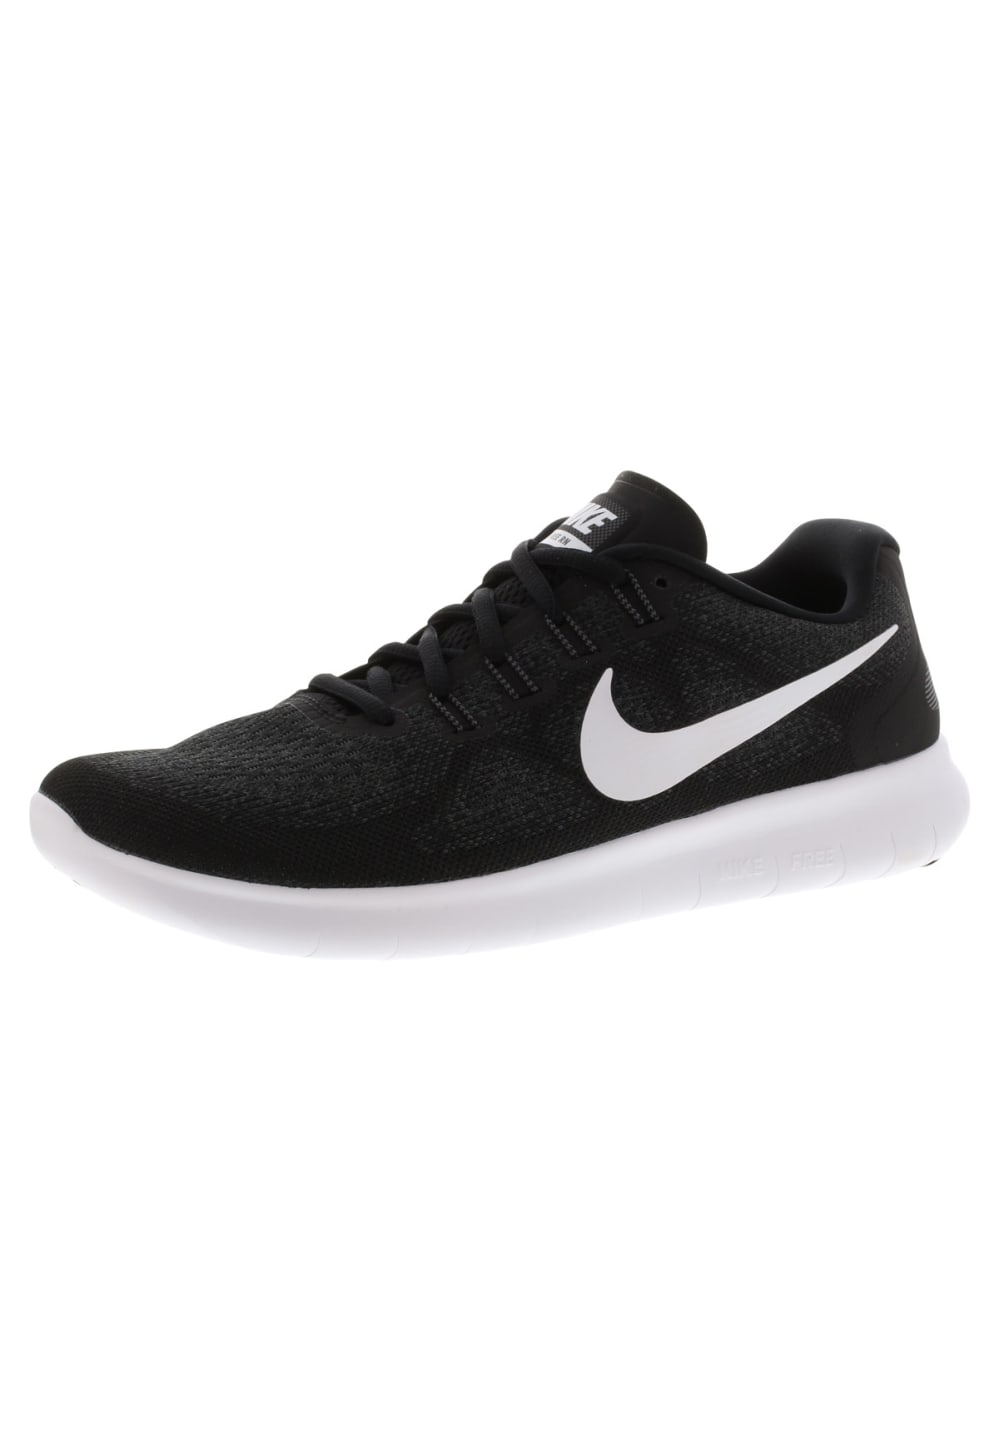 best loved 58e7c a747c Nike Free RN 2017 - Running shoes for Women - Black   21RUN